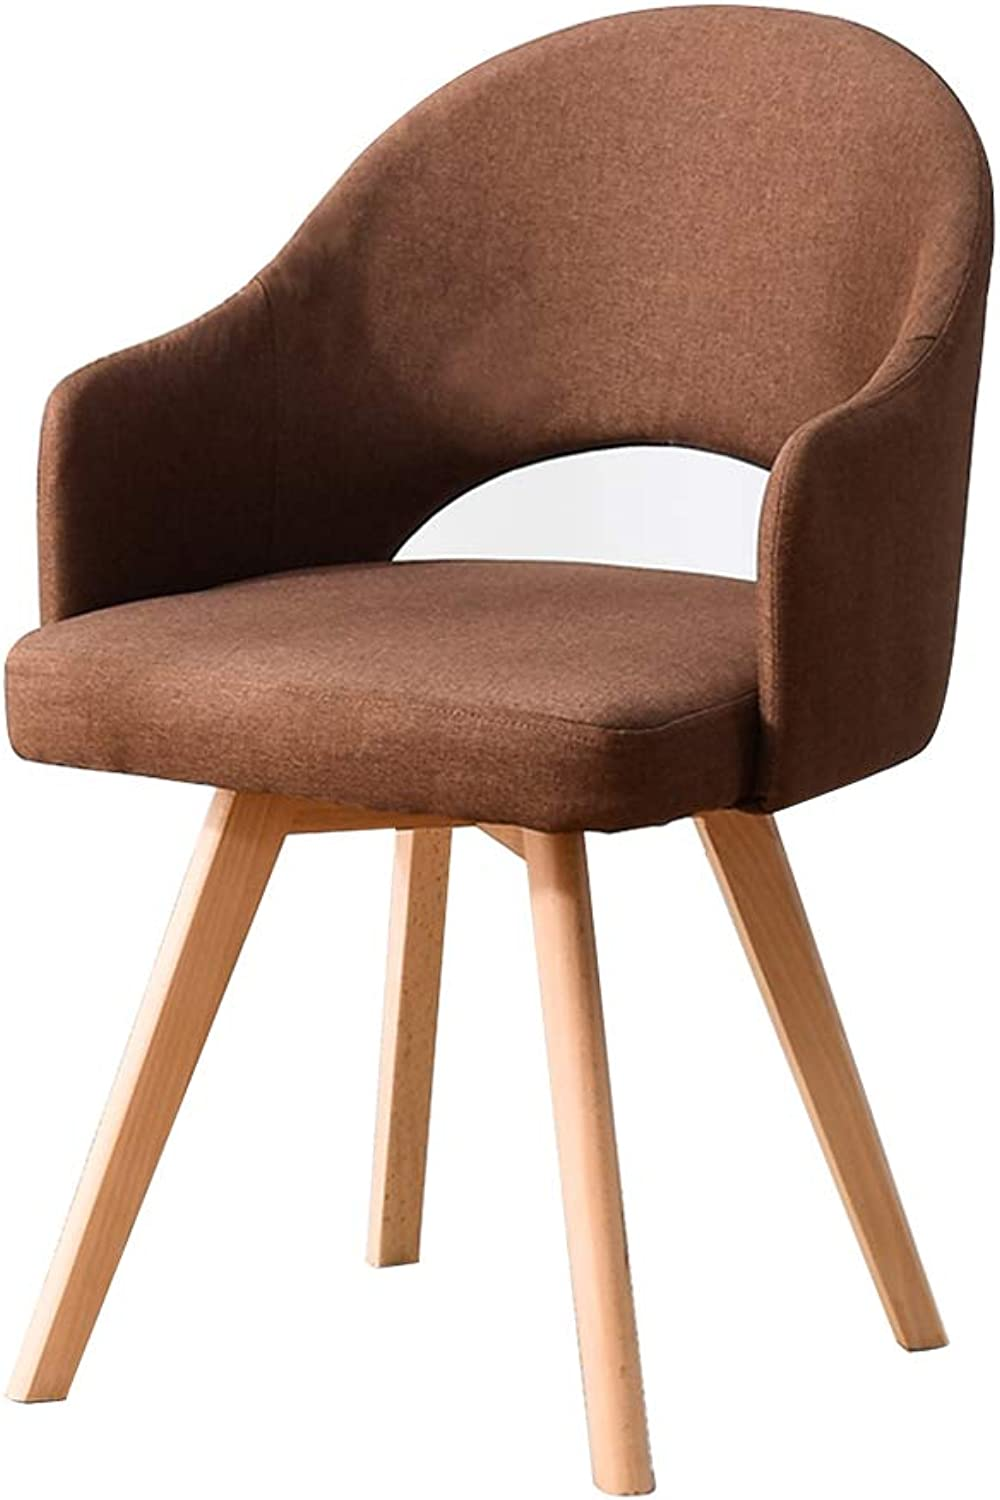 Chair Solid Wood Stool Restaurant backrest Dining Chair Learning Simple Desk Chair Leisure Home Dining Chair Dining Room Furniture (color   Brown, Size   48  46  78CM)